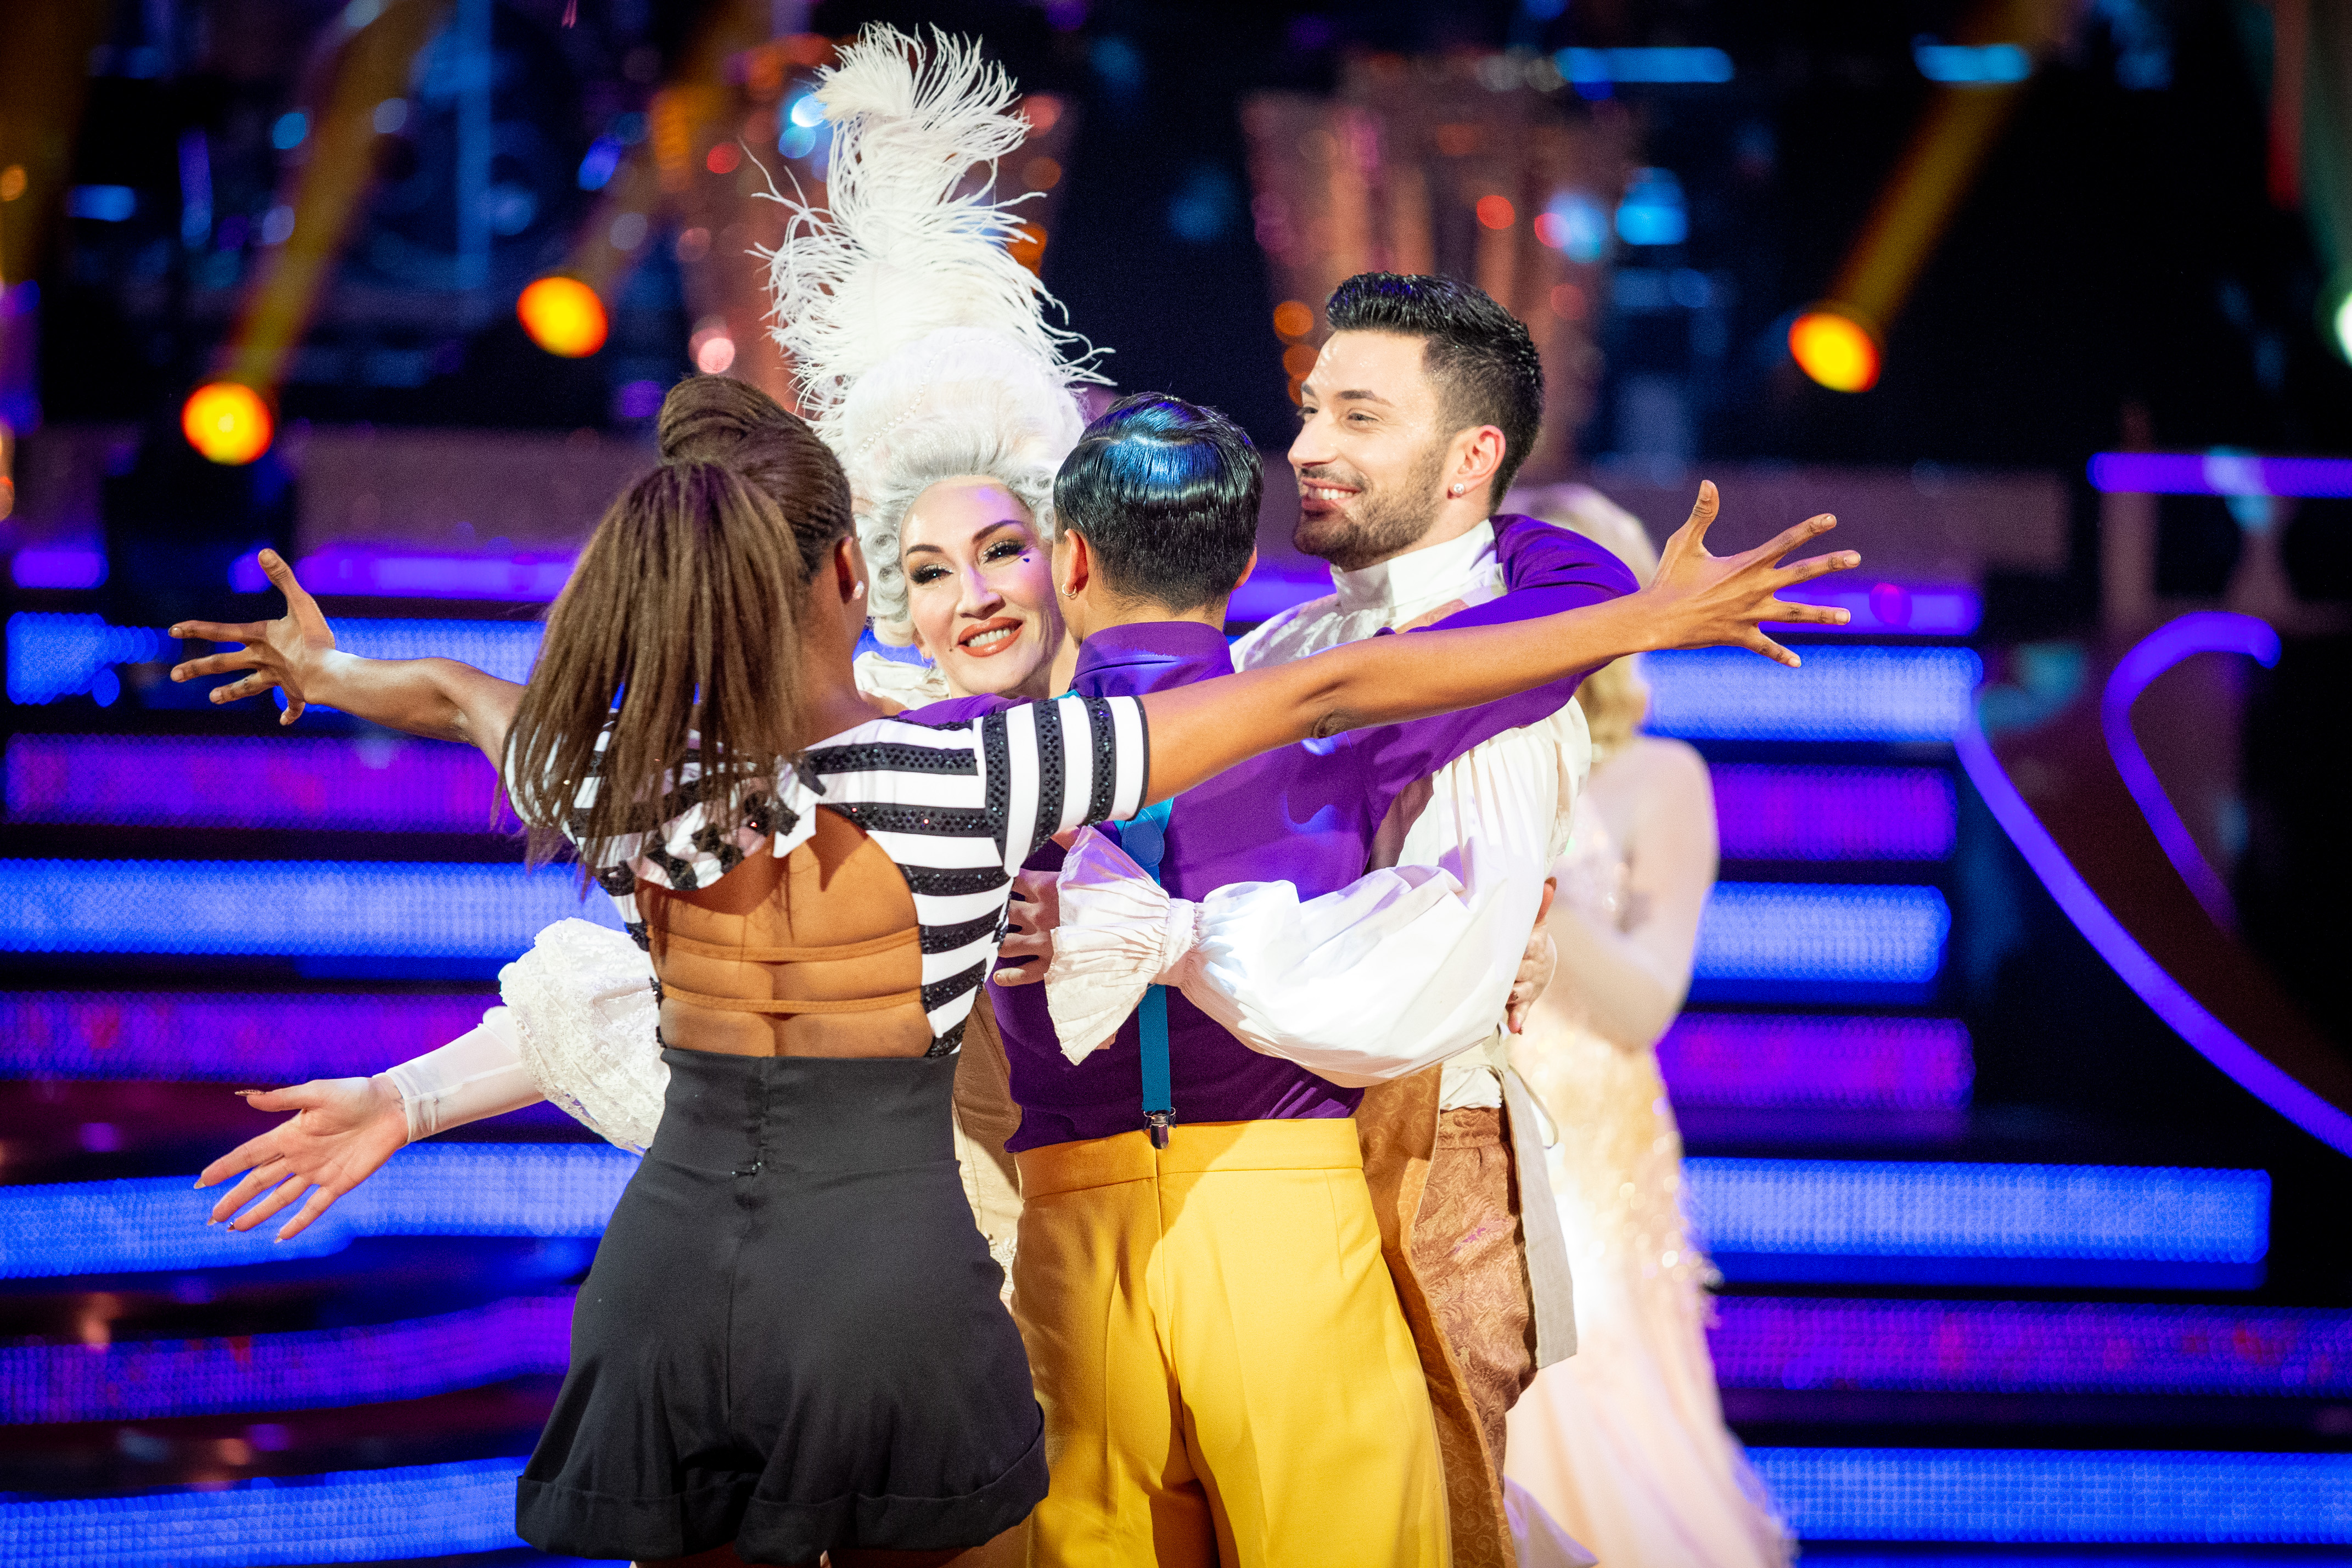 Michelle Visage was voted off the dance show this weekend (Credit: BBC)